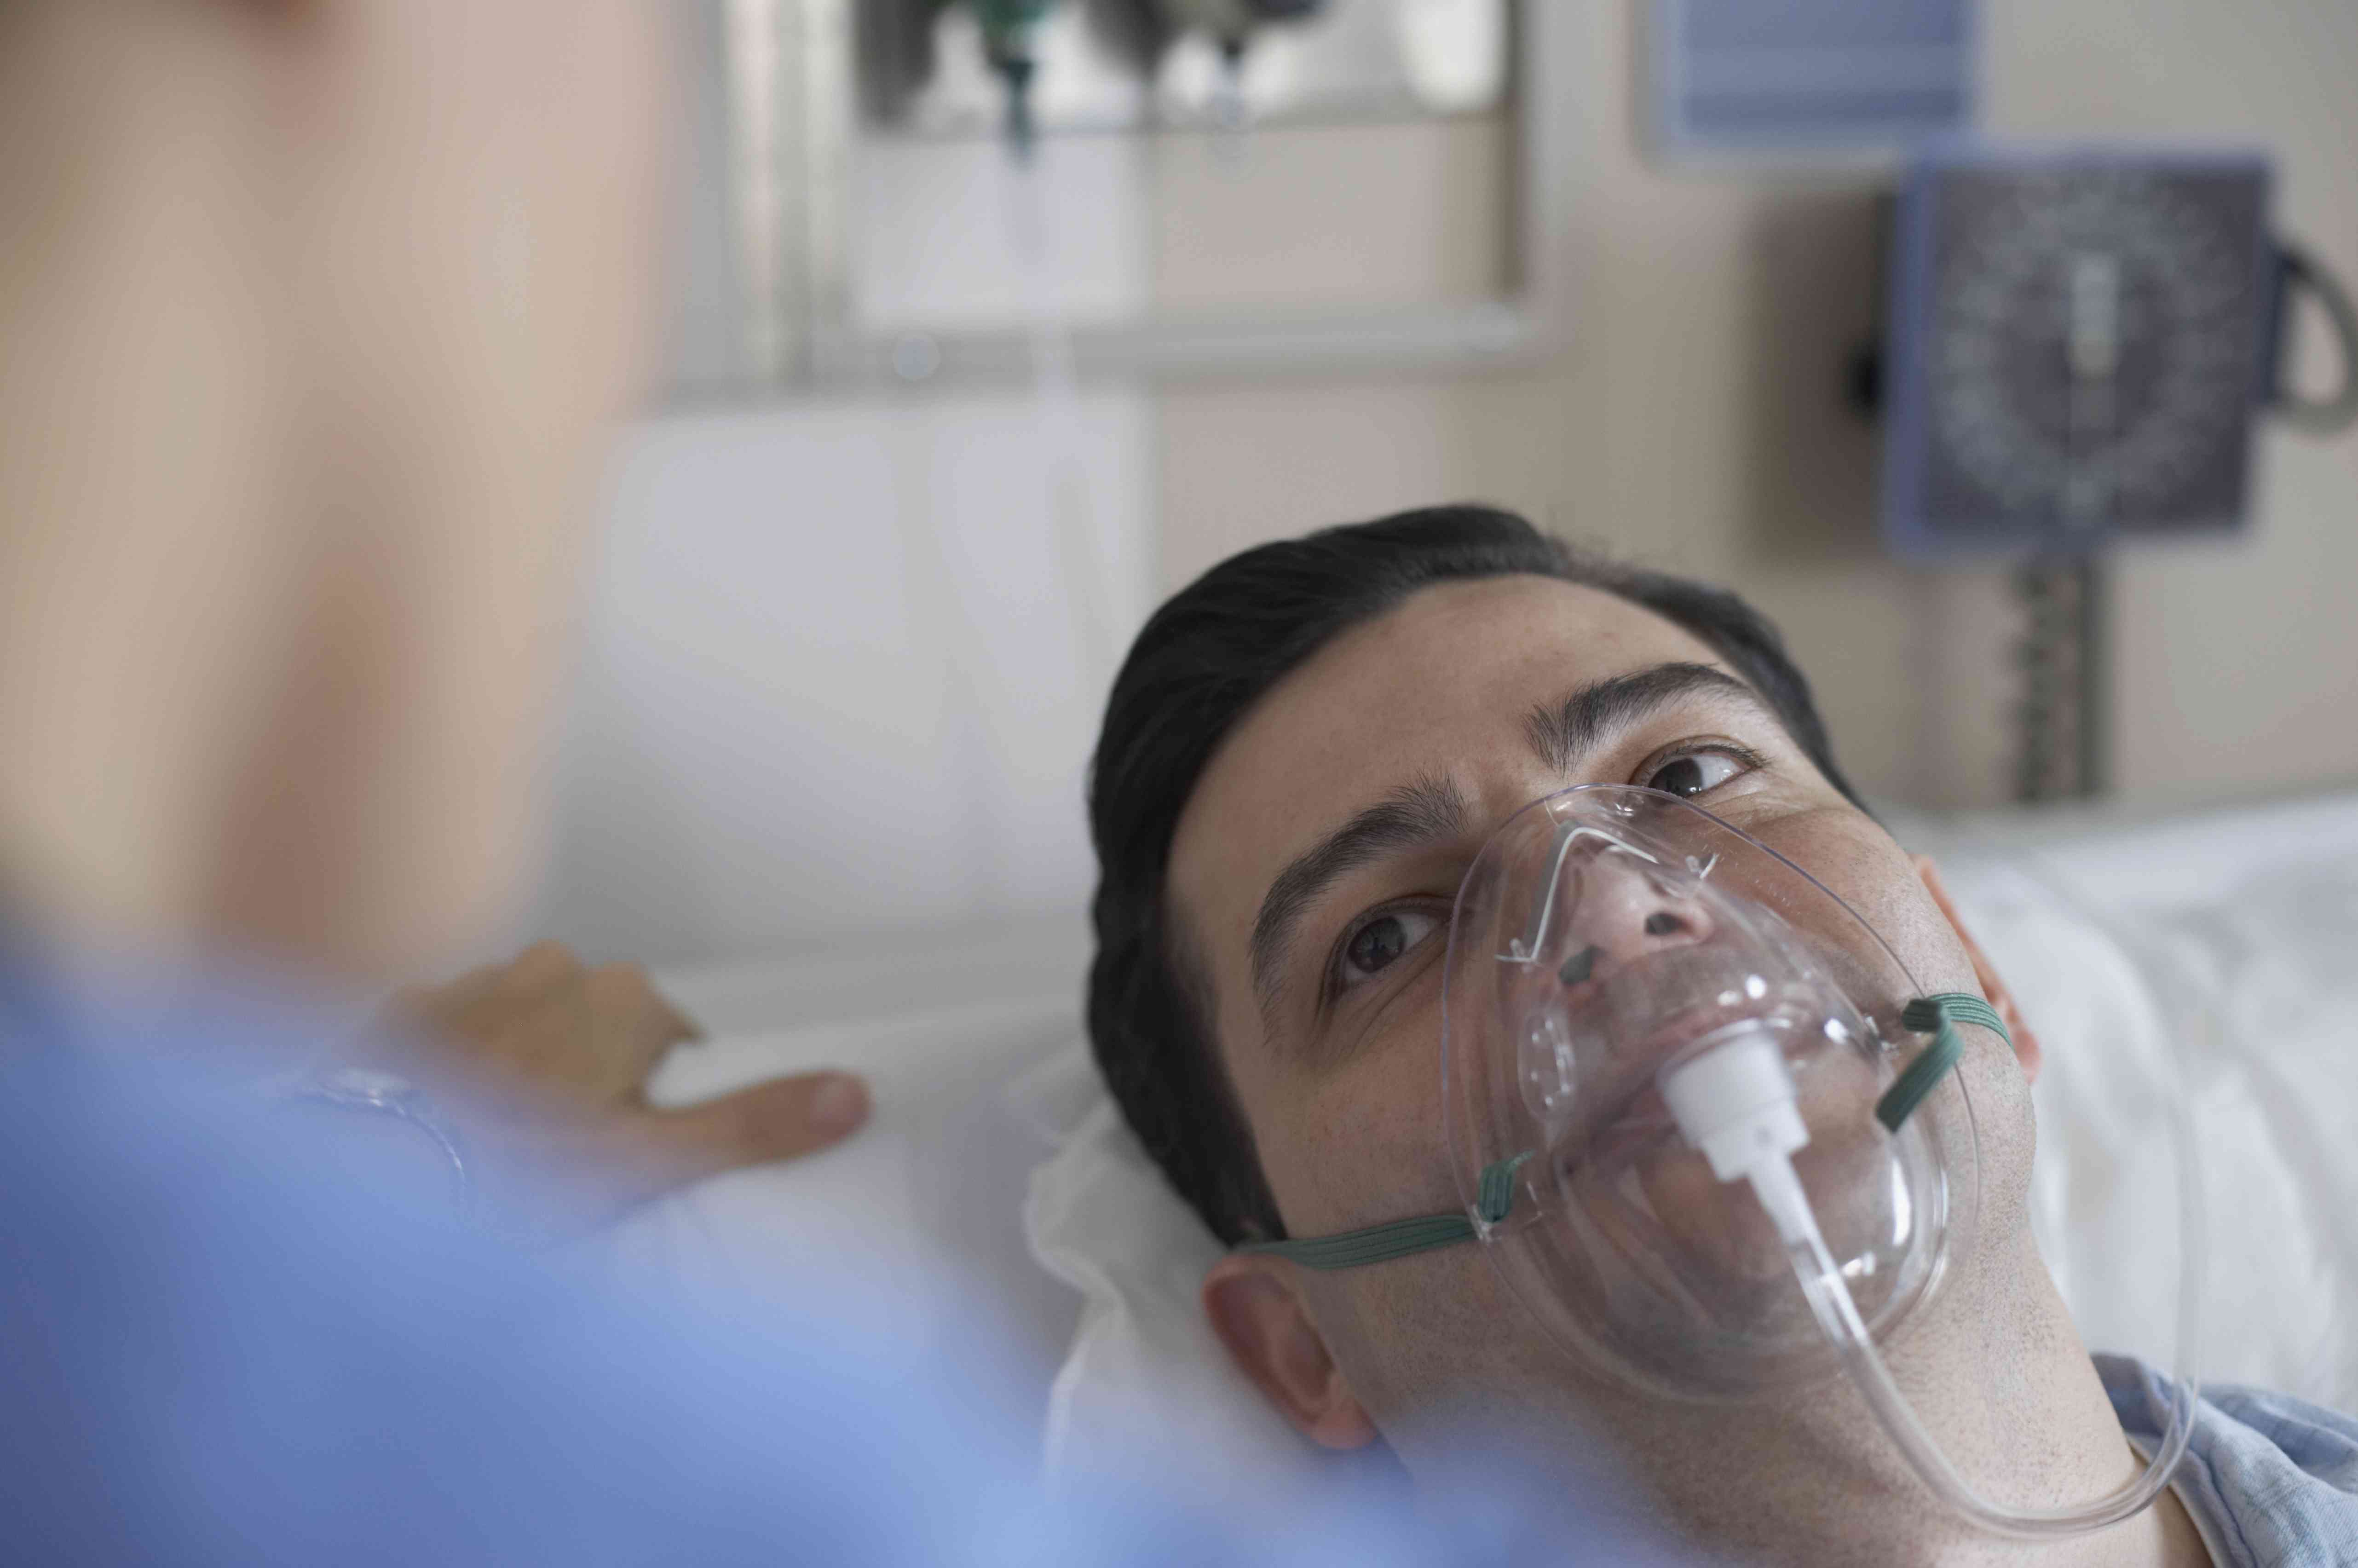 A man wearing an oxygen mask in the hospital